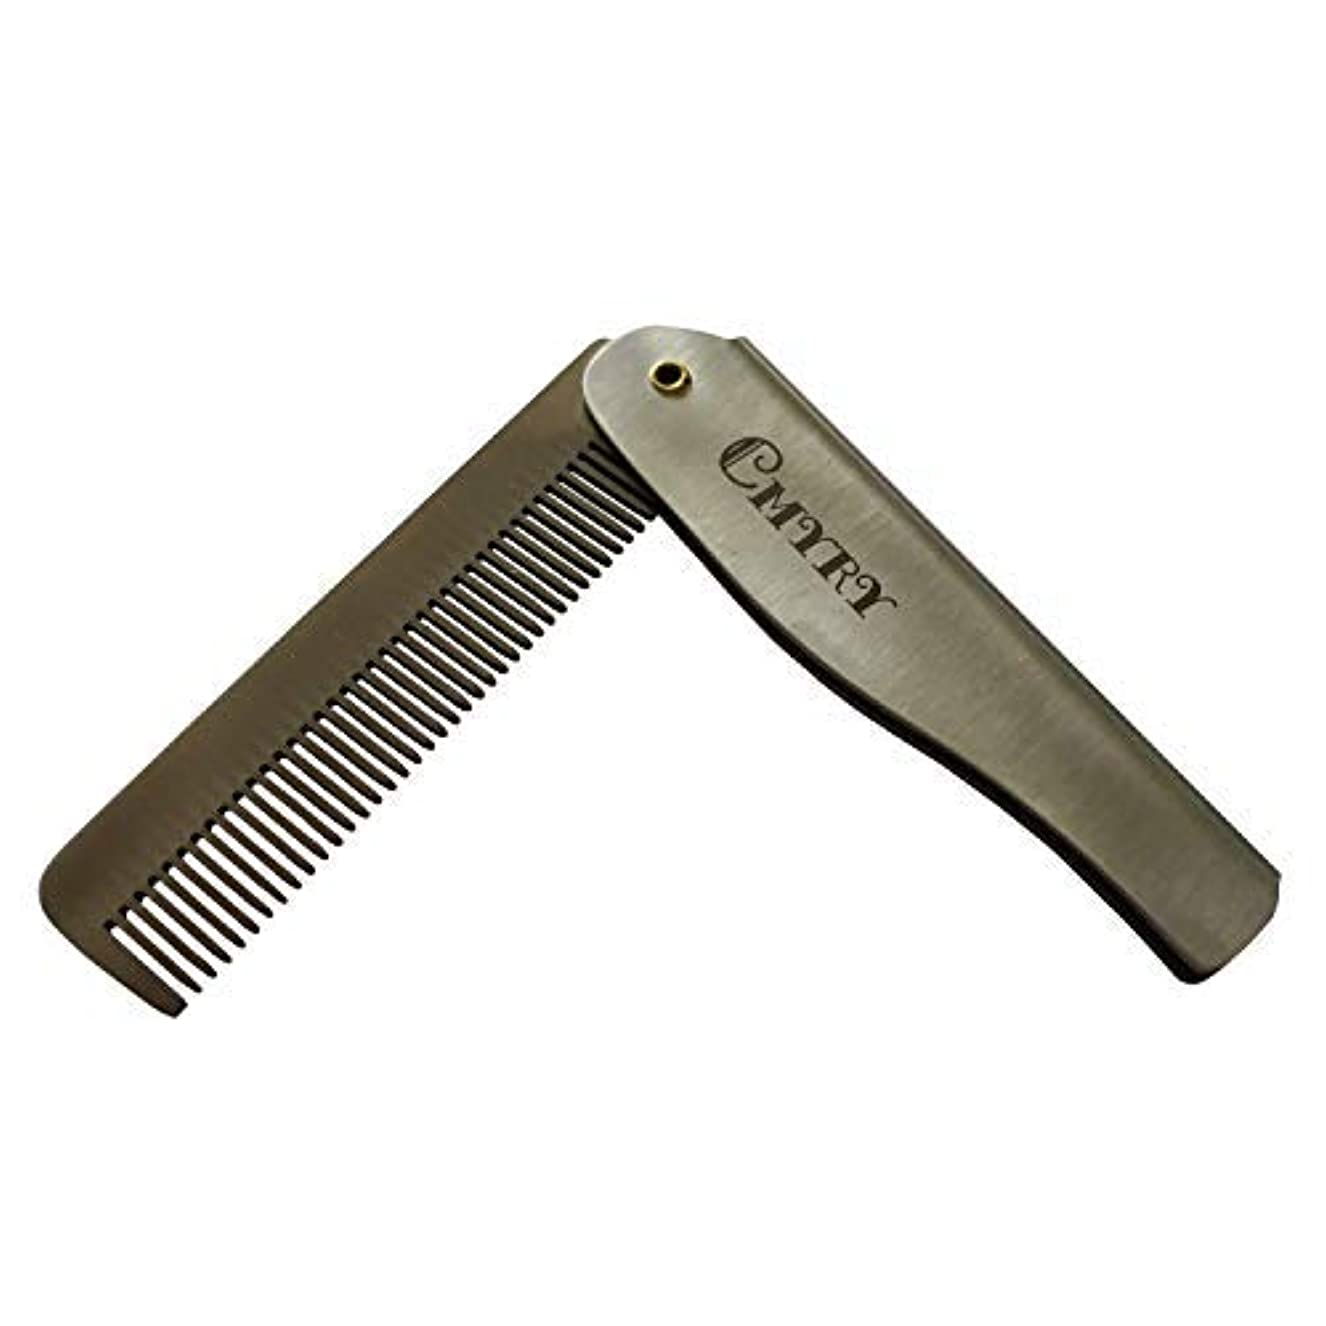 Folding Beard Hair Pocket Mustaches Pouch Comb Durable Anti-Static Comb for Men [並行輸入品]